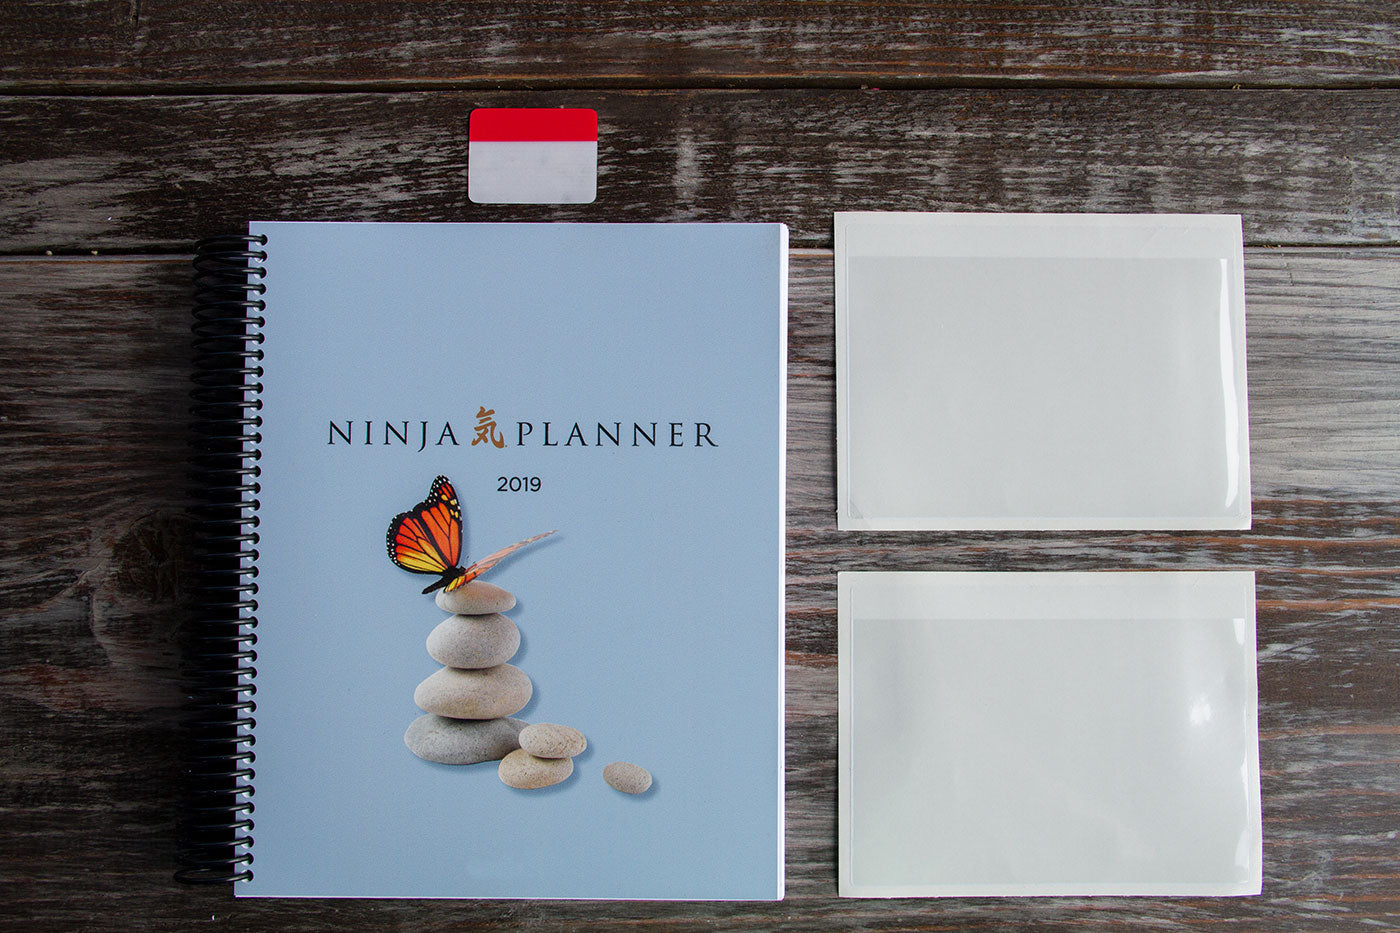 In the box, Ninja Planner 2019